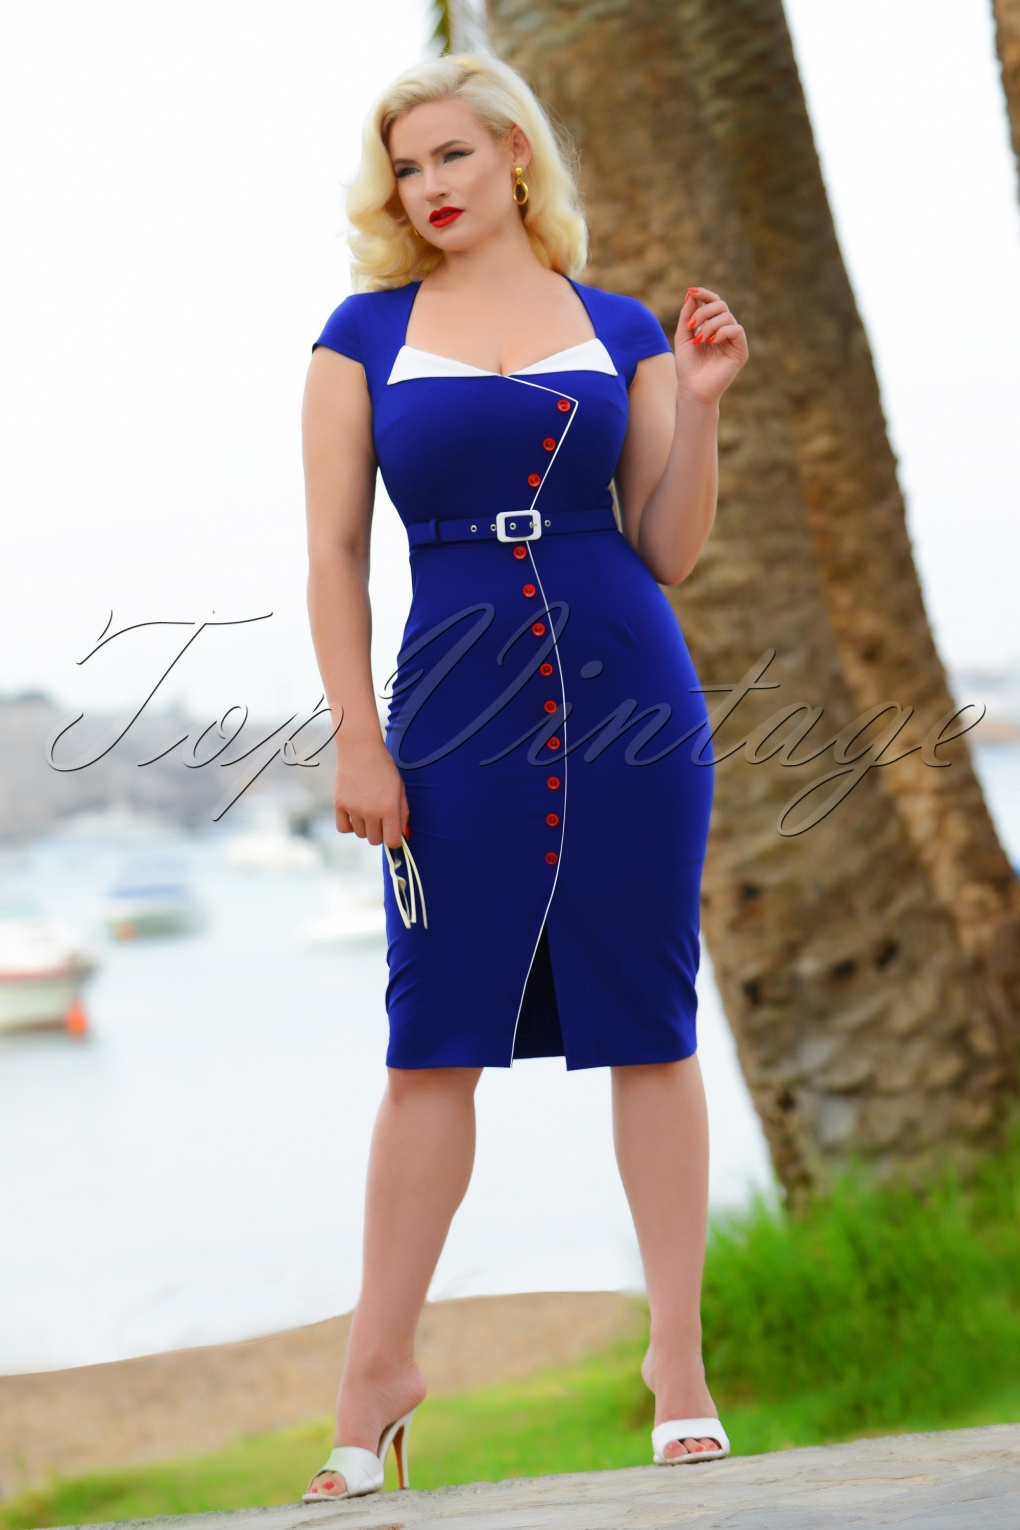 Vintage Sailor Clothes, Nautical Theme Clothing 50s Valerie Pencil Dress in Royal Blue £101.83 AT vintagedancer.com